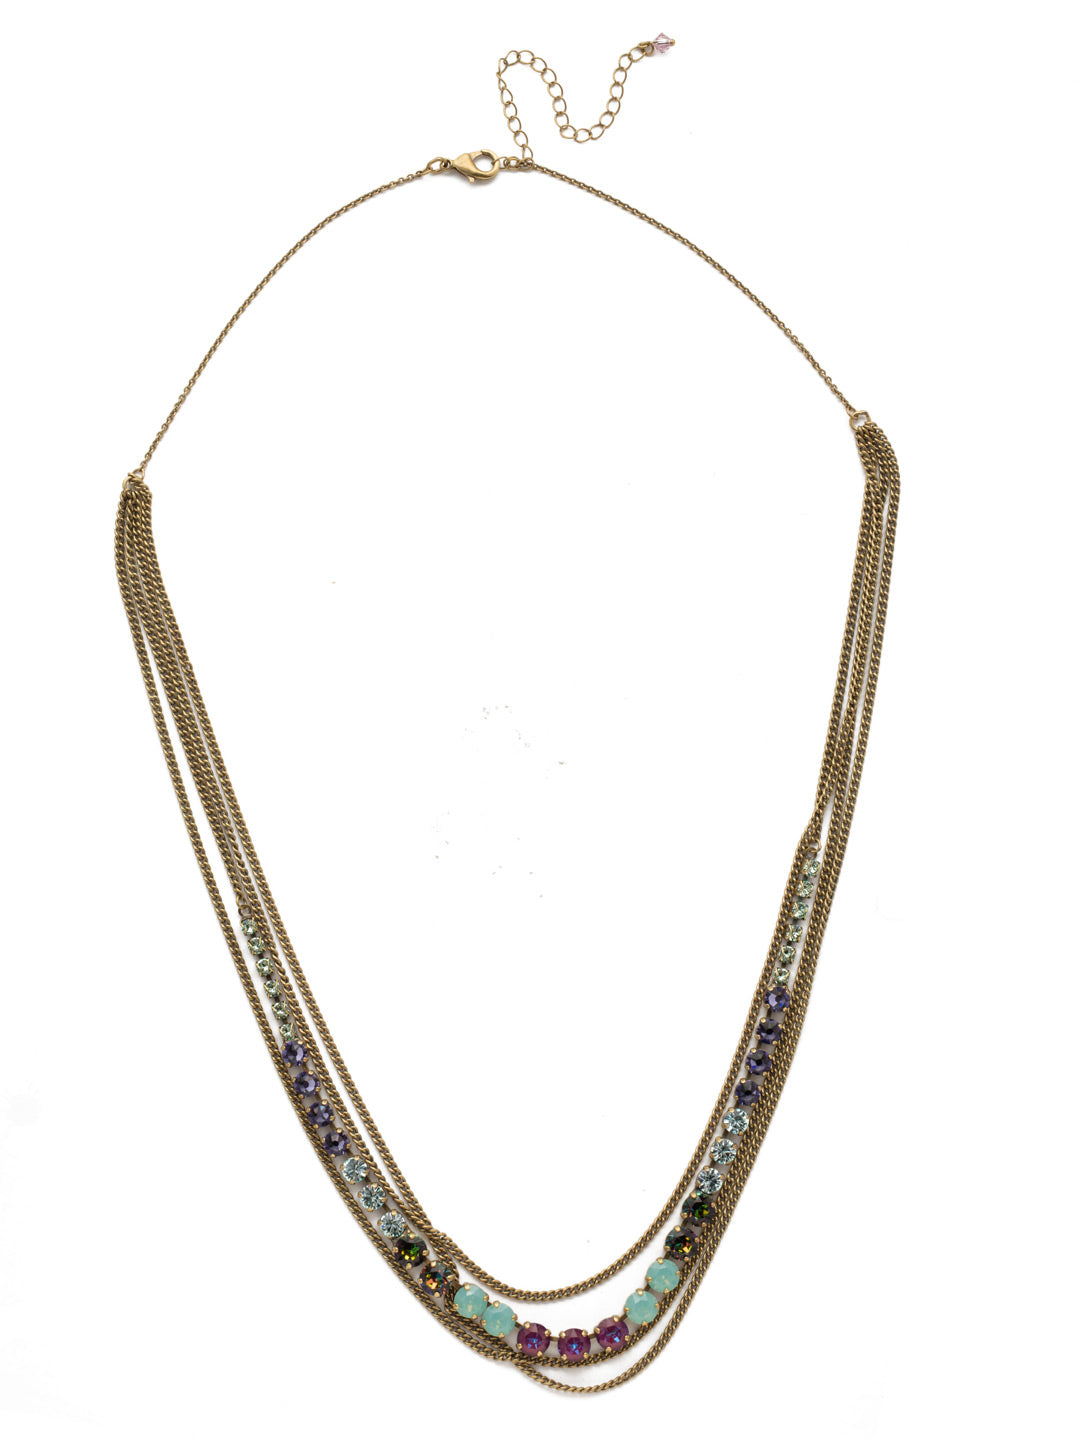 Layer It On Multi-Strand Layered Necklace - NCR73AGIRB